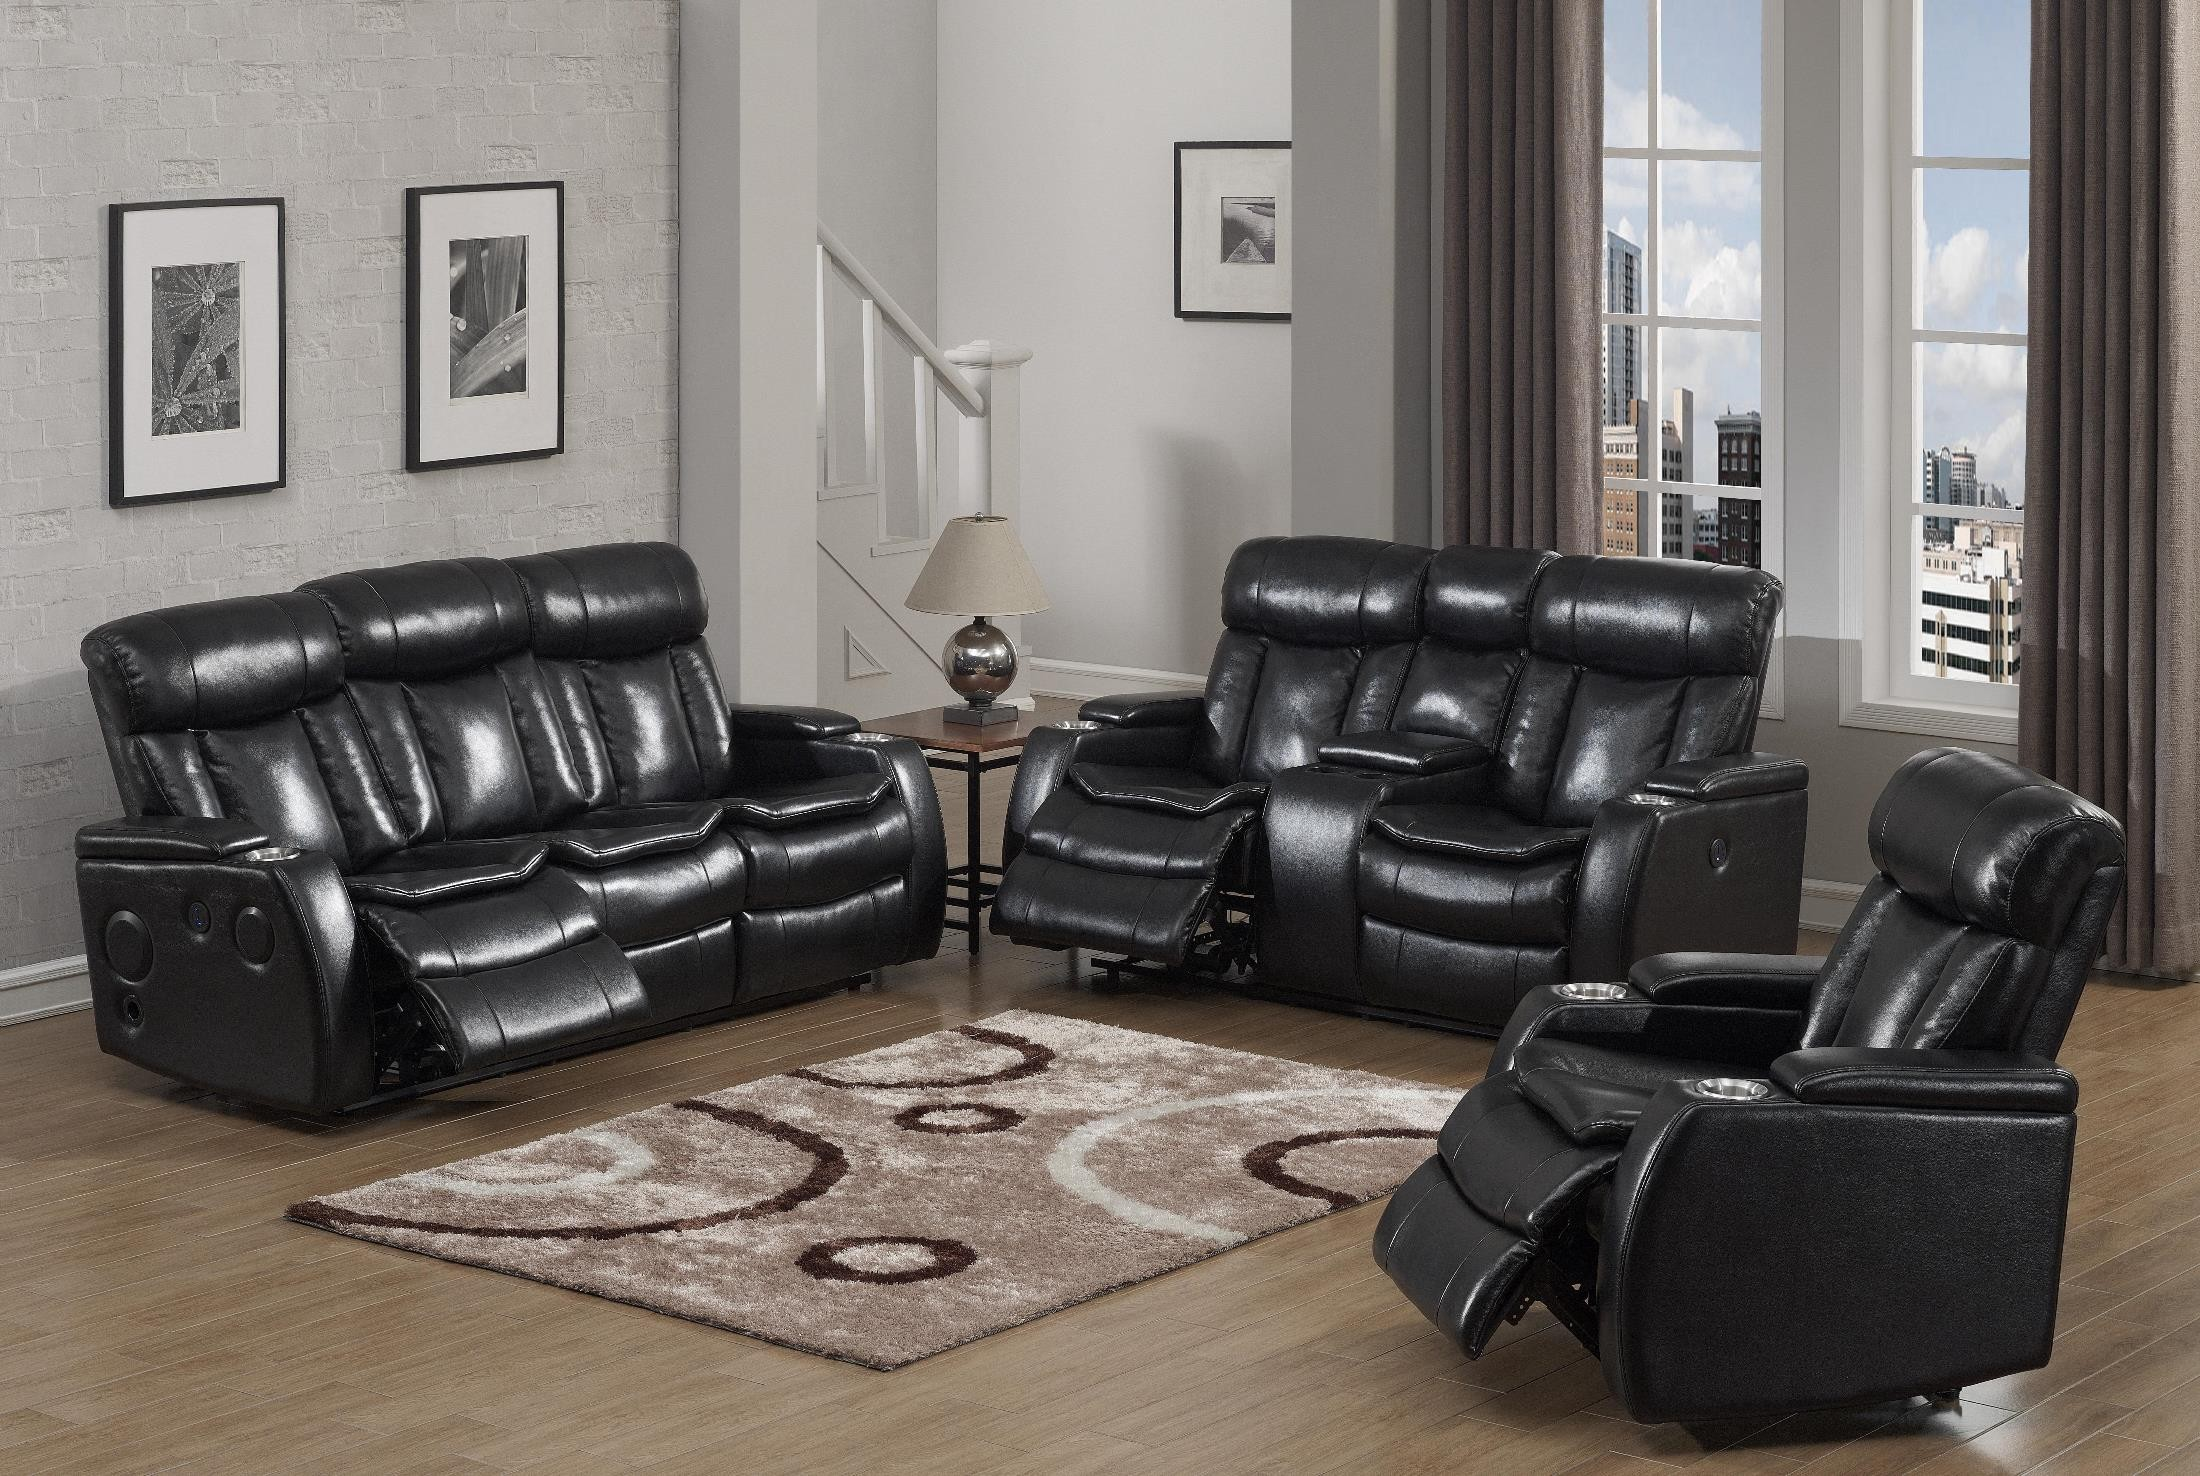 Recliner Gaming Setup Galaxy Black Power Reclining Sofa From Prime Resource